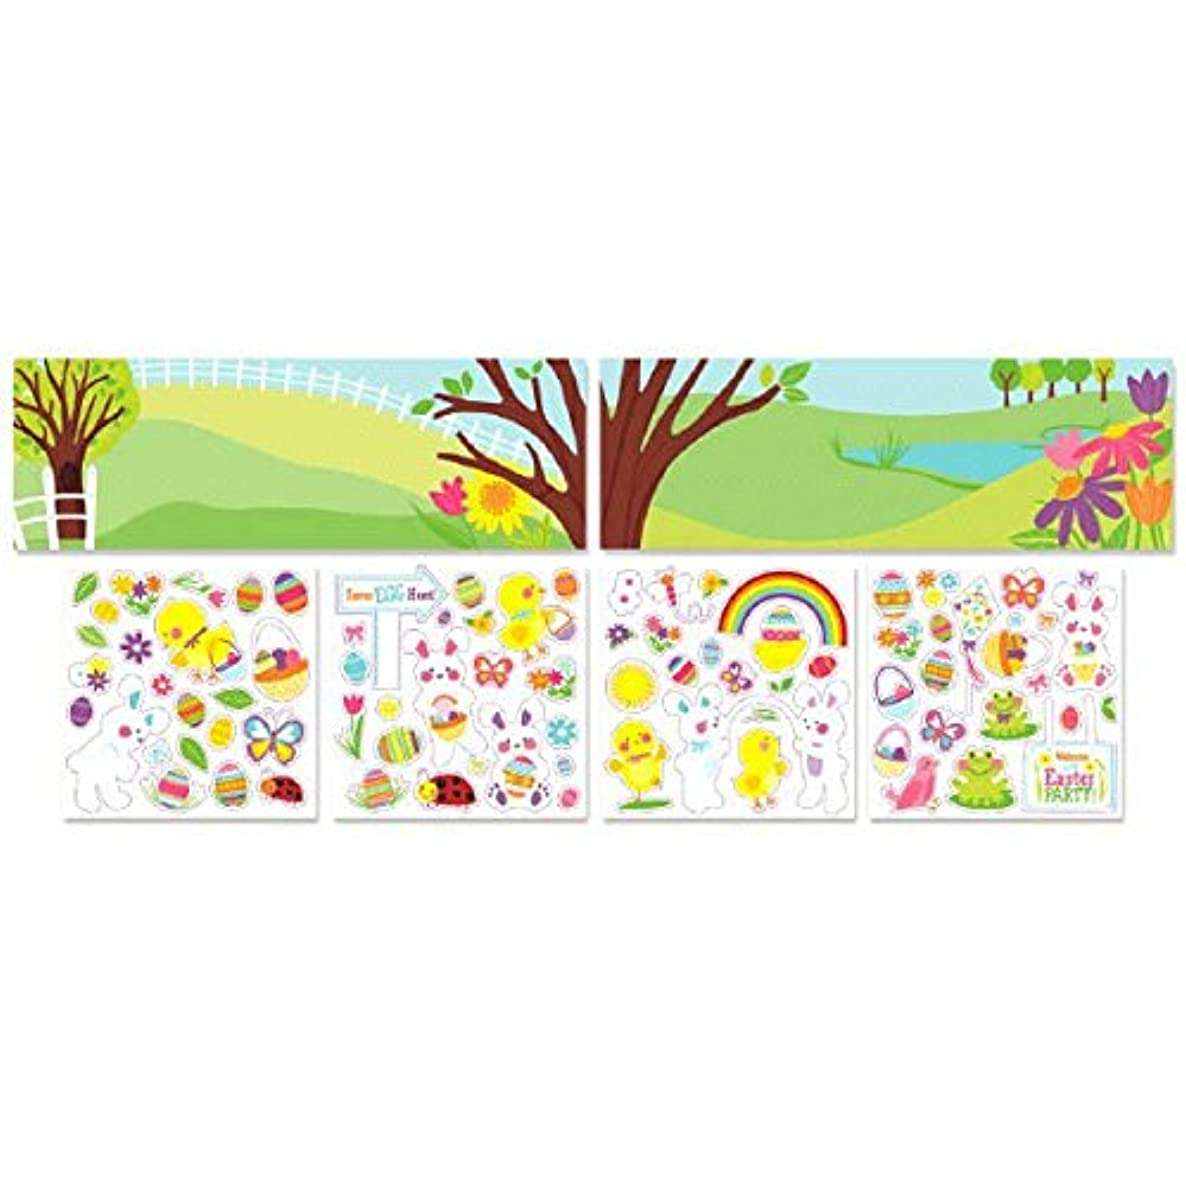 Amscan 150066 Sticker, One size, Multicolor ulwjpuj723